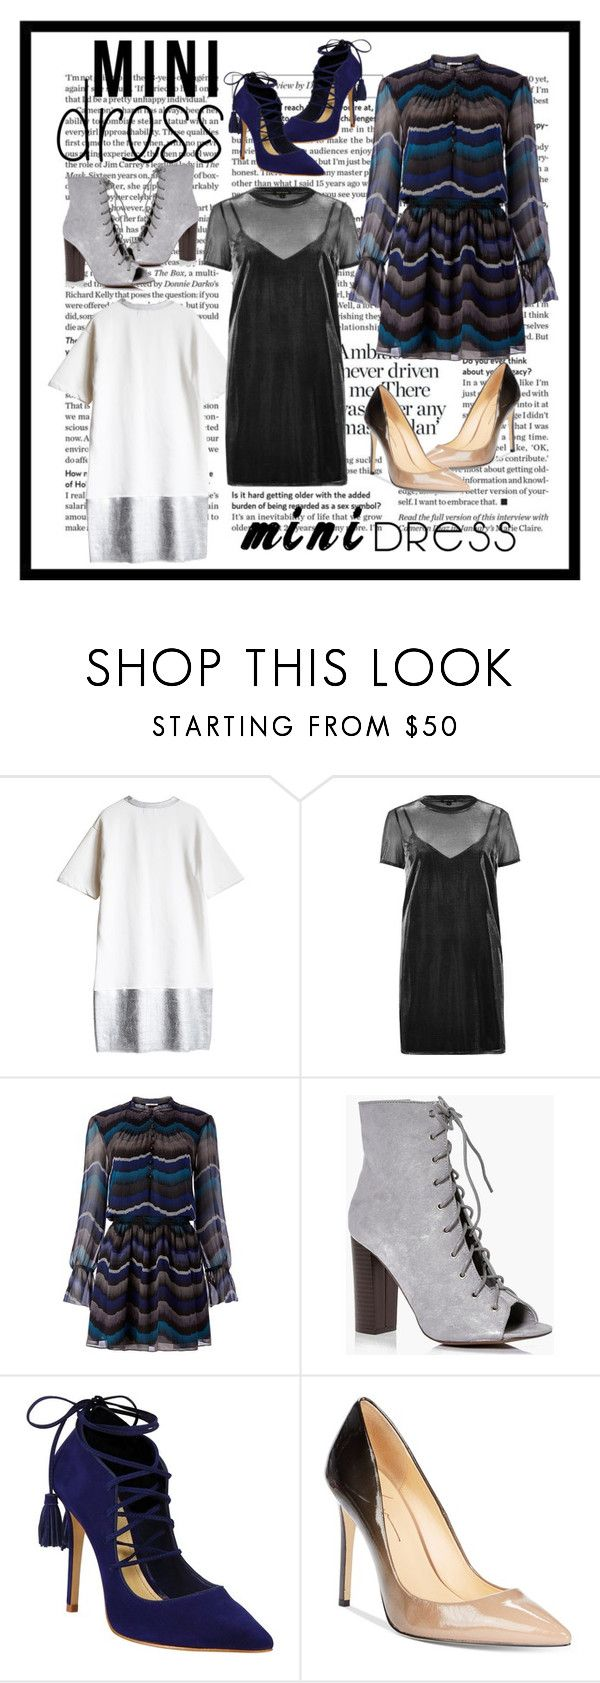 """""""Mini Dresses w/matching shoes Contest Entry"""" by sun-loves-the-moon ❤ liked on Polyvore featuring River Island, Diane Von Furstenberg, Boohoo, Schutz and Daya"""